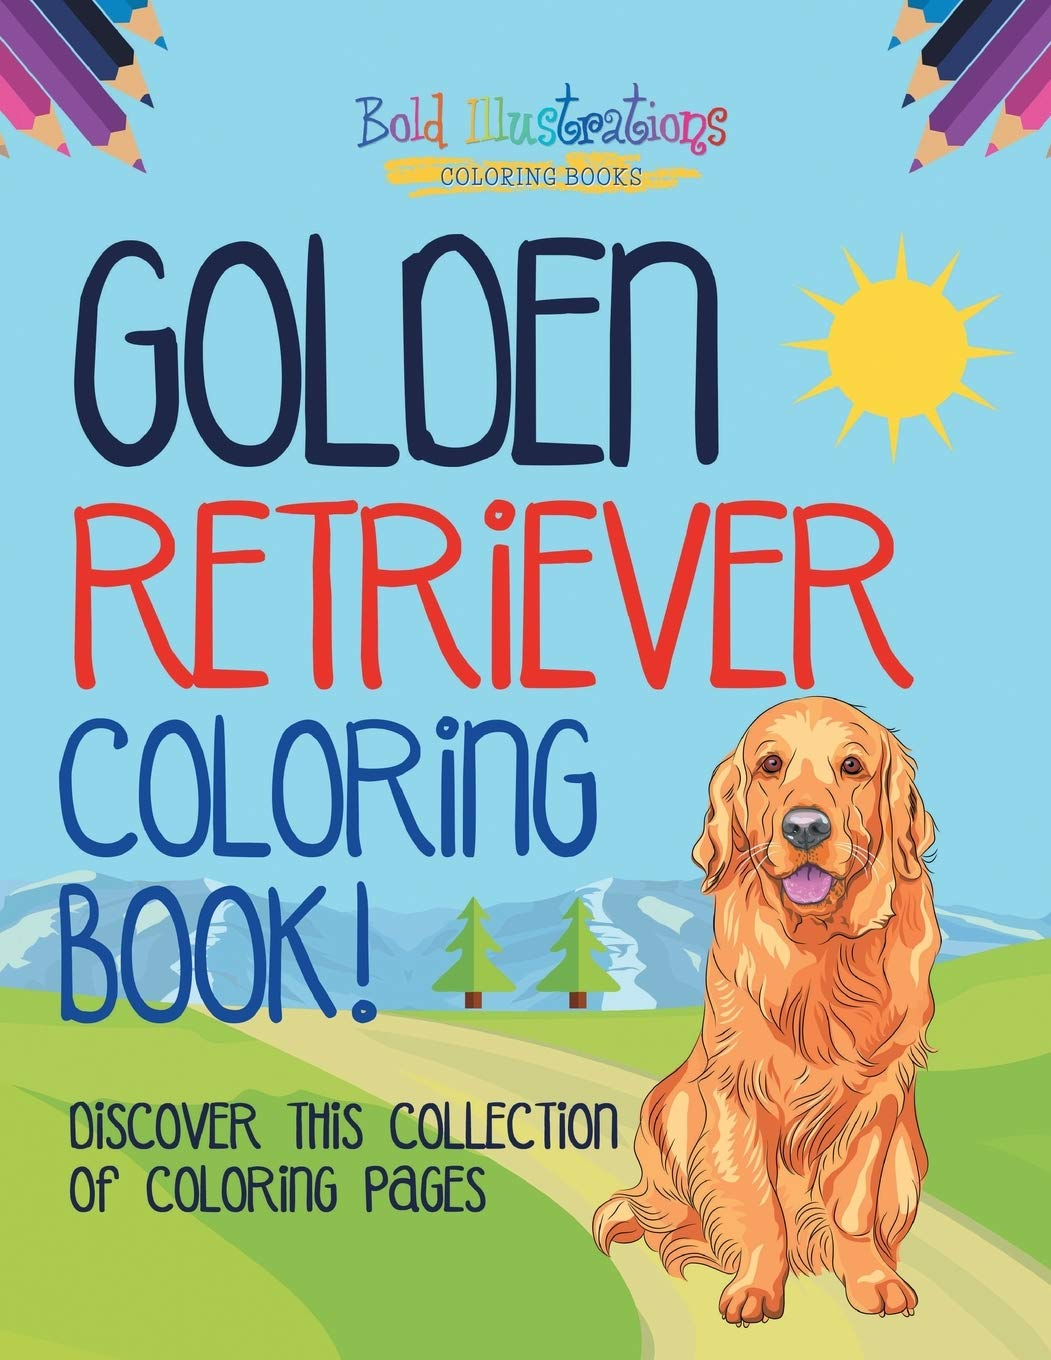 Printable golden retriever coloring page. Free PDF download at ... | 1360x1051